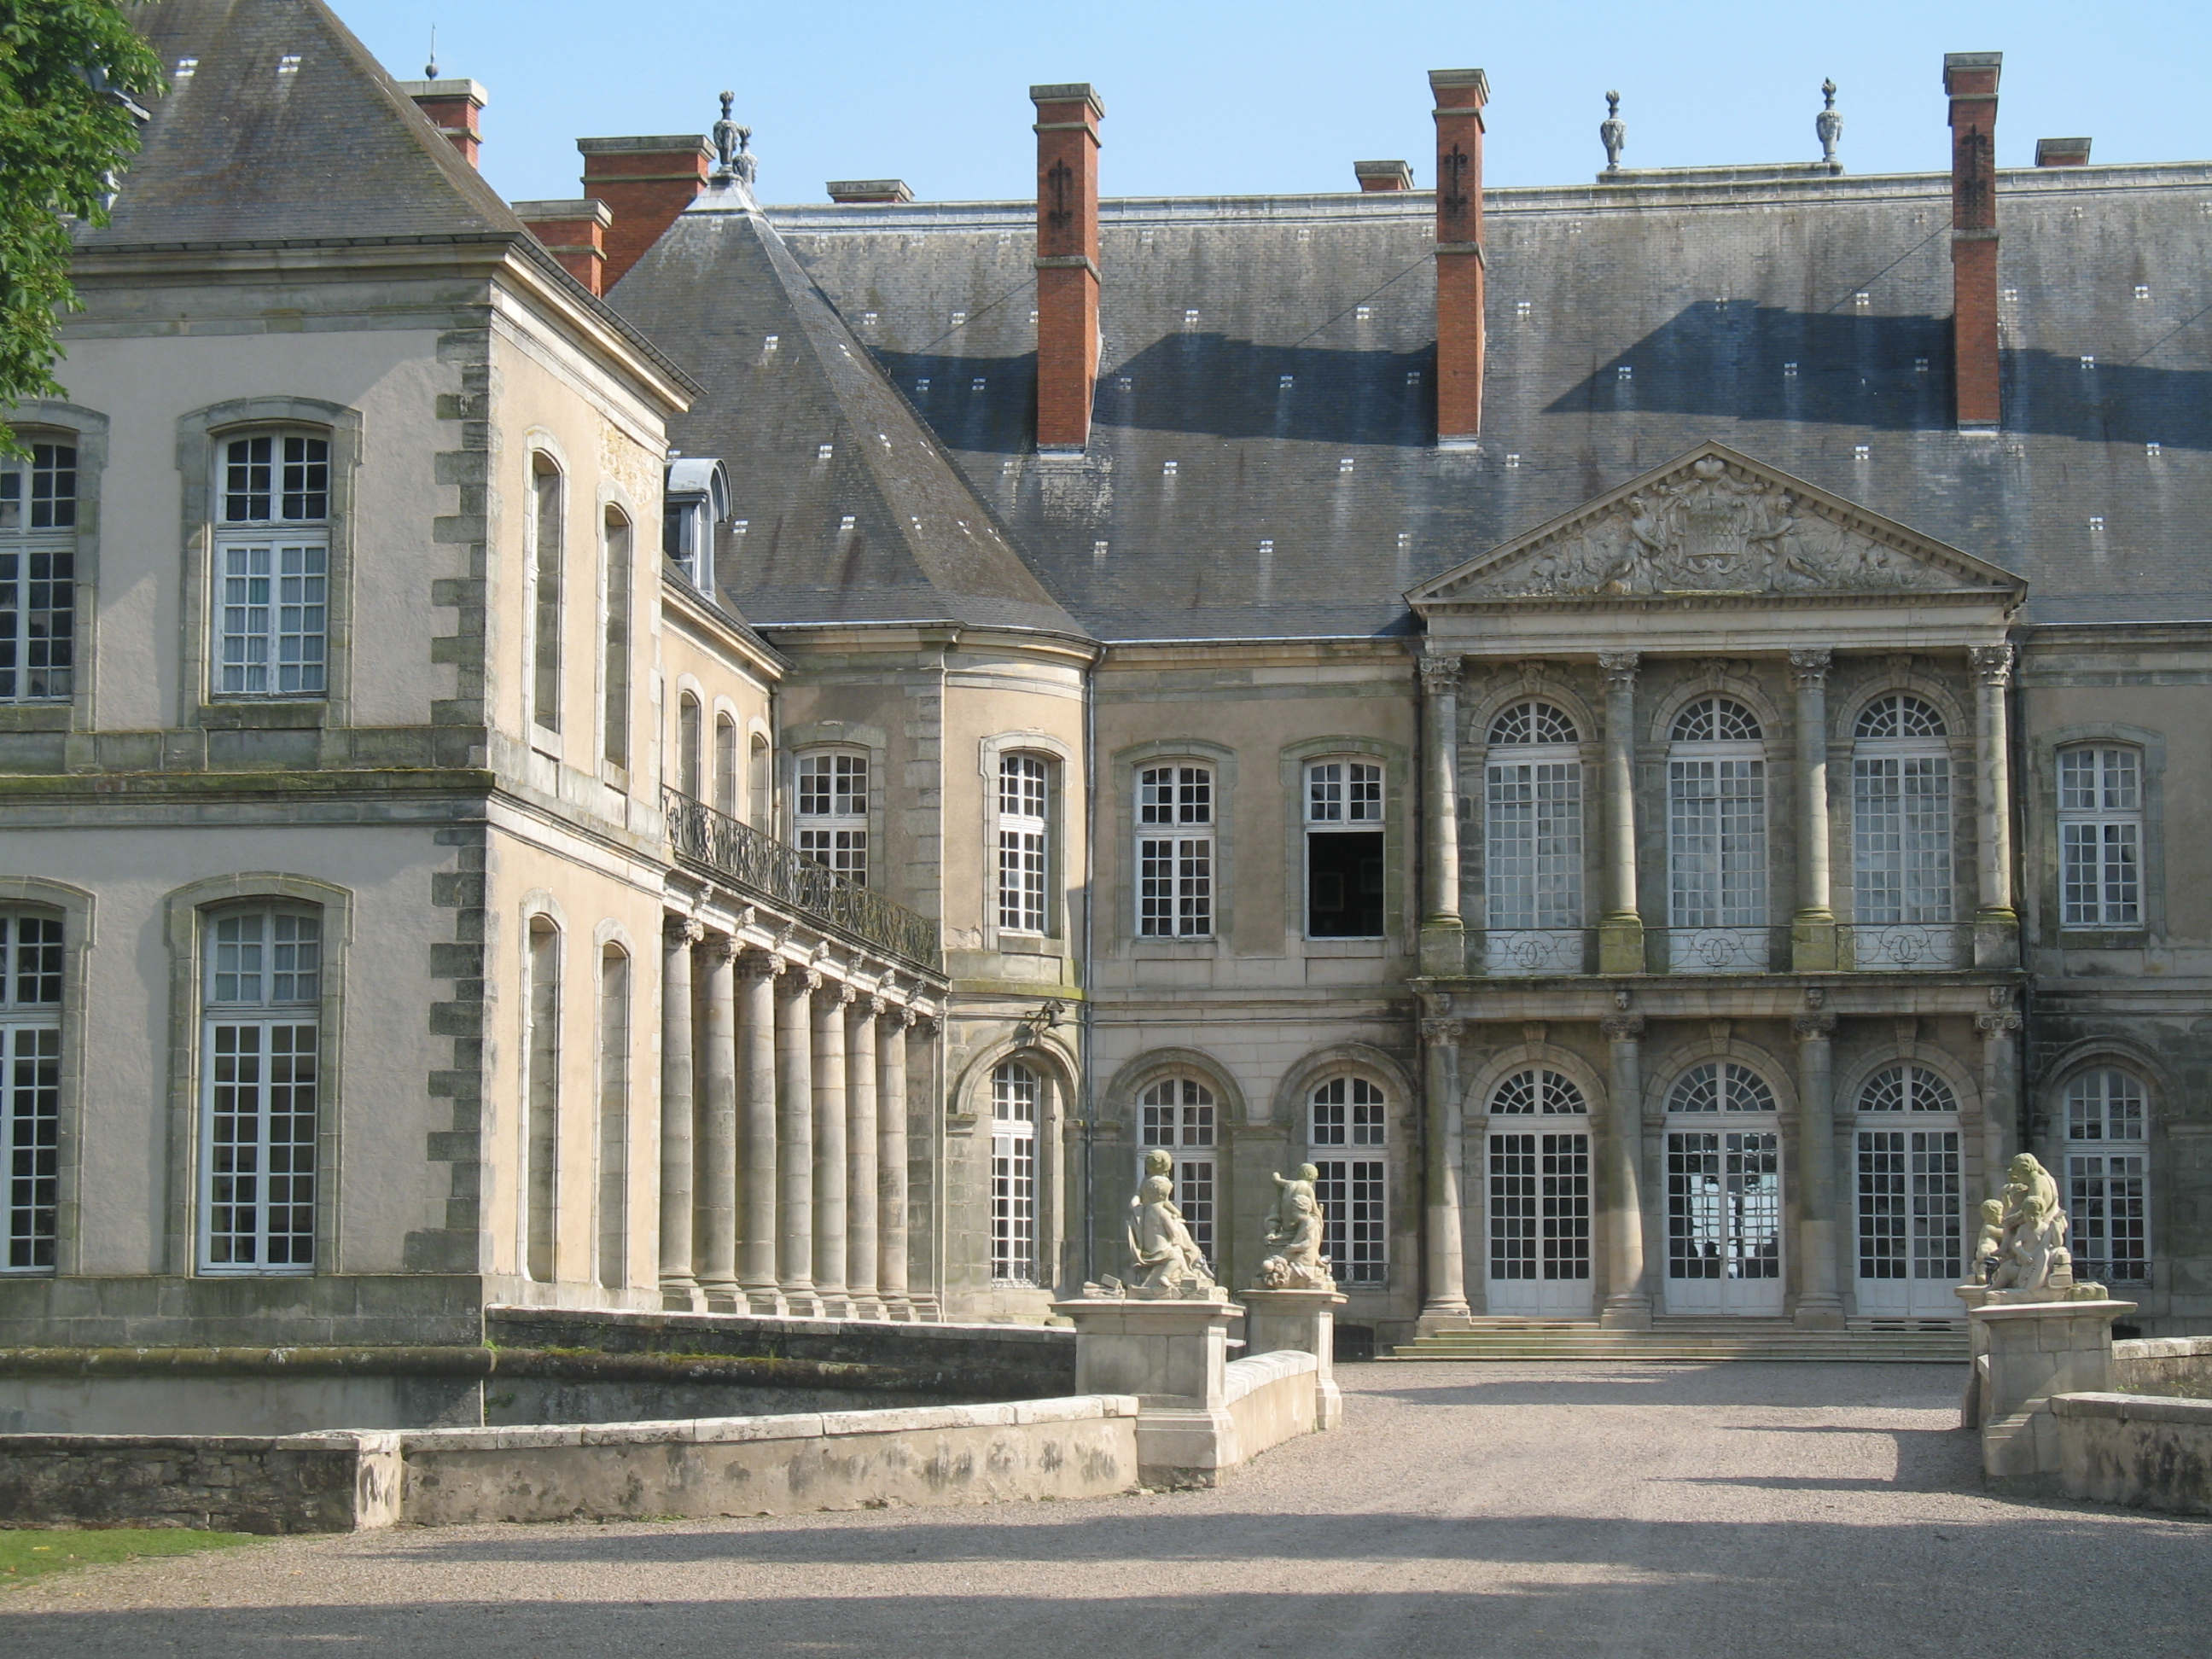 Elegant Château Du0027Haroué, A French Château Located In A Valley In The Centre Of The  Village Of Haroué, In The Saintois, In The Département Of  Meurthe Et Moselle And ...